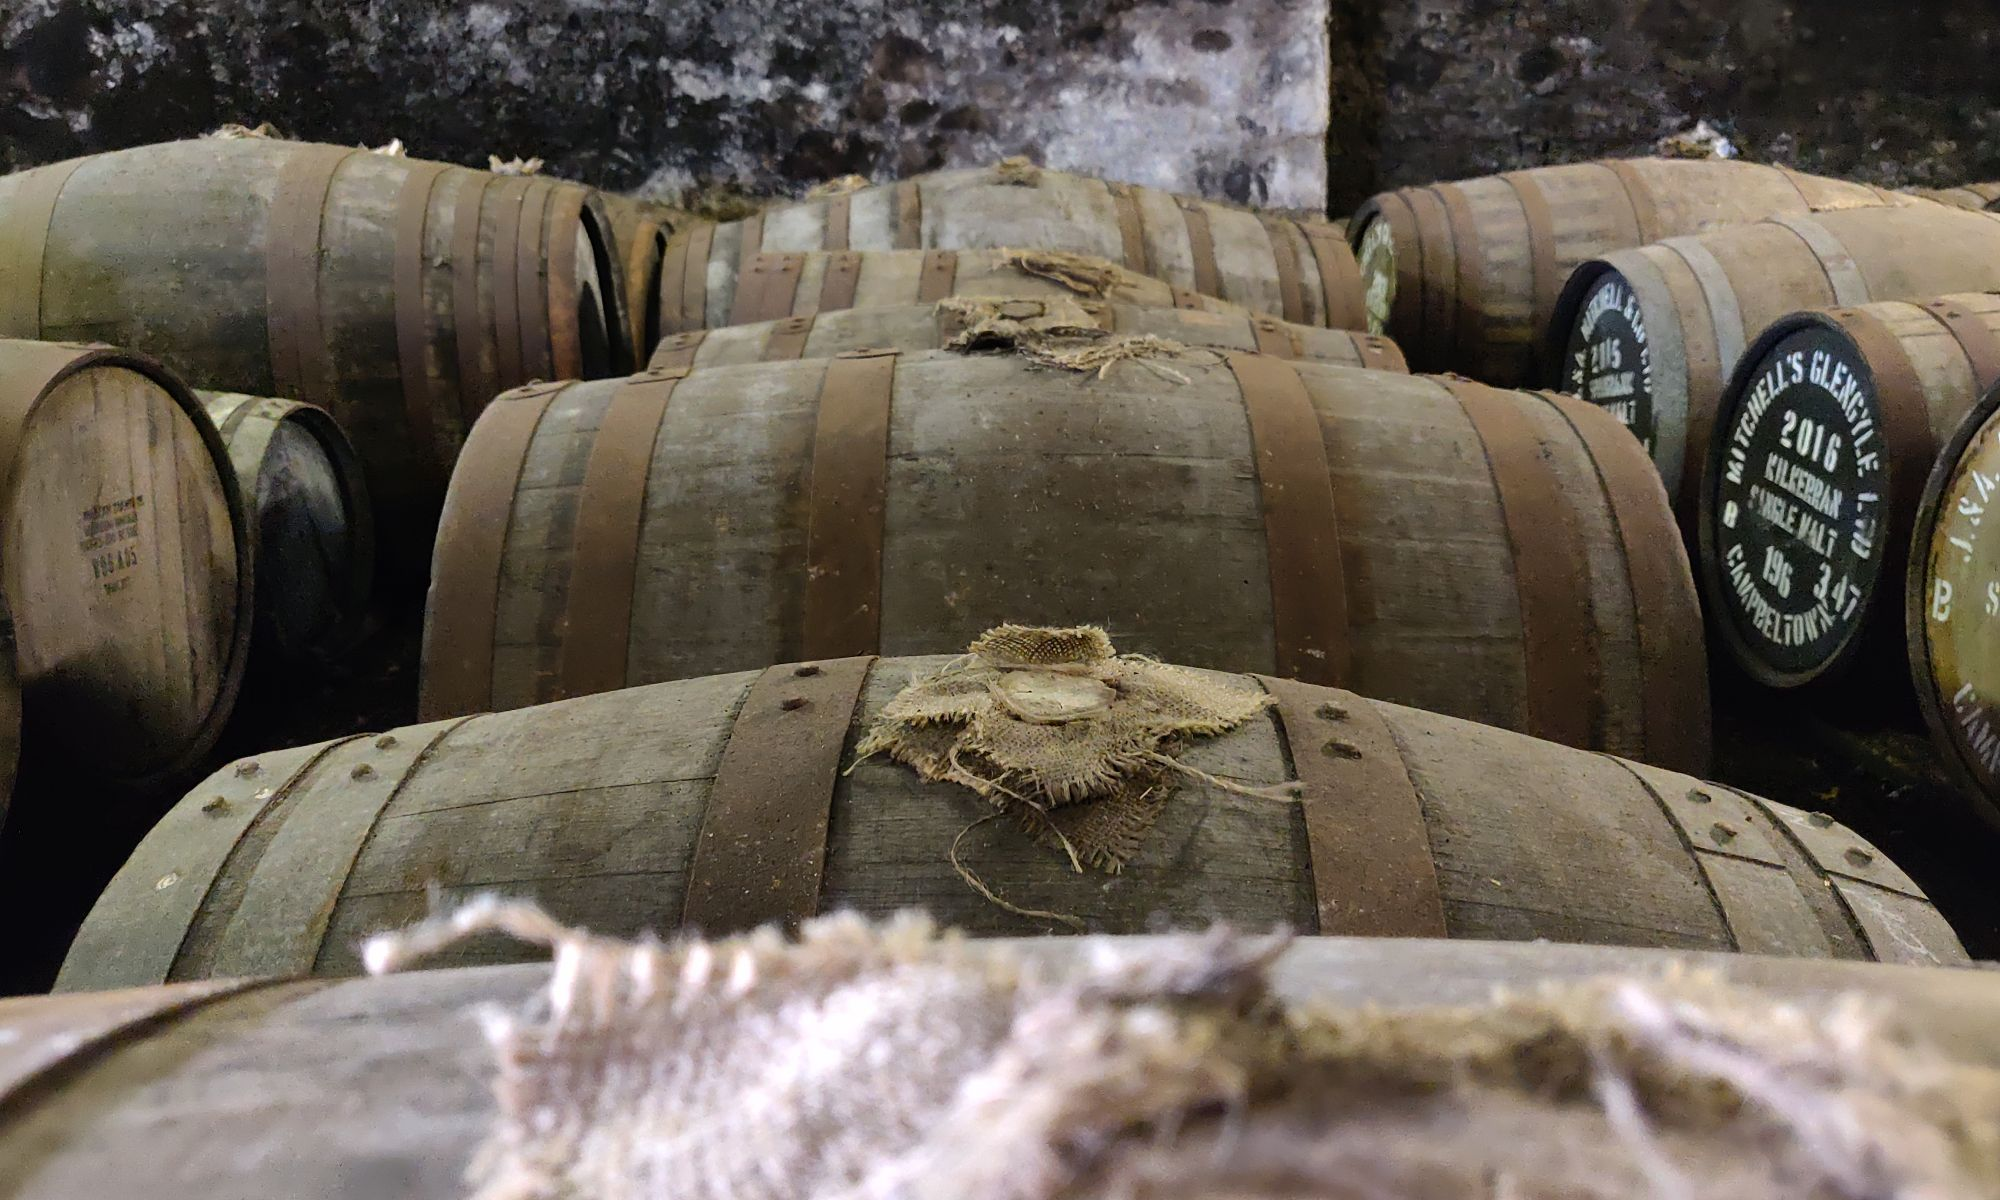 Casks in a whisky warehouse at Springbank distillery, Scotland